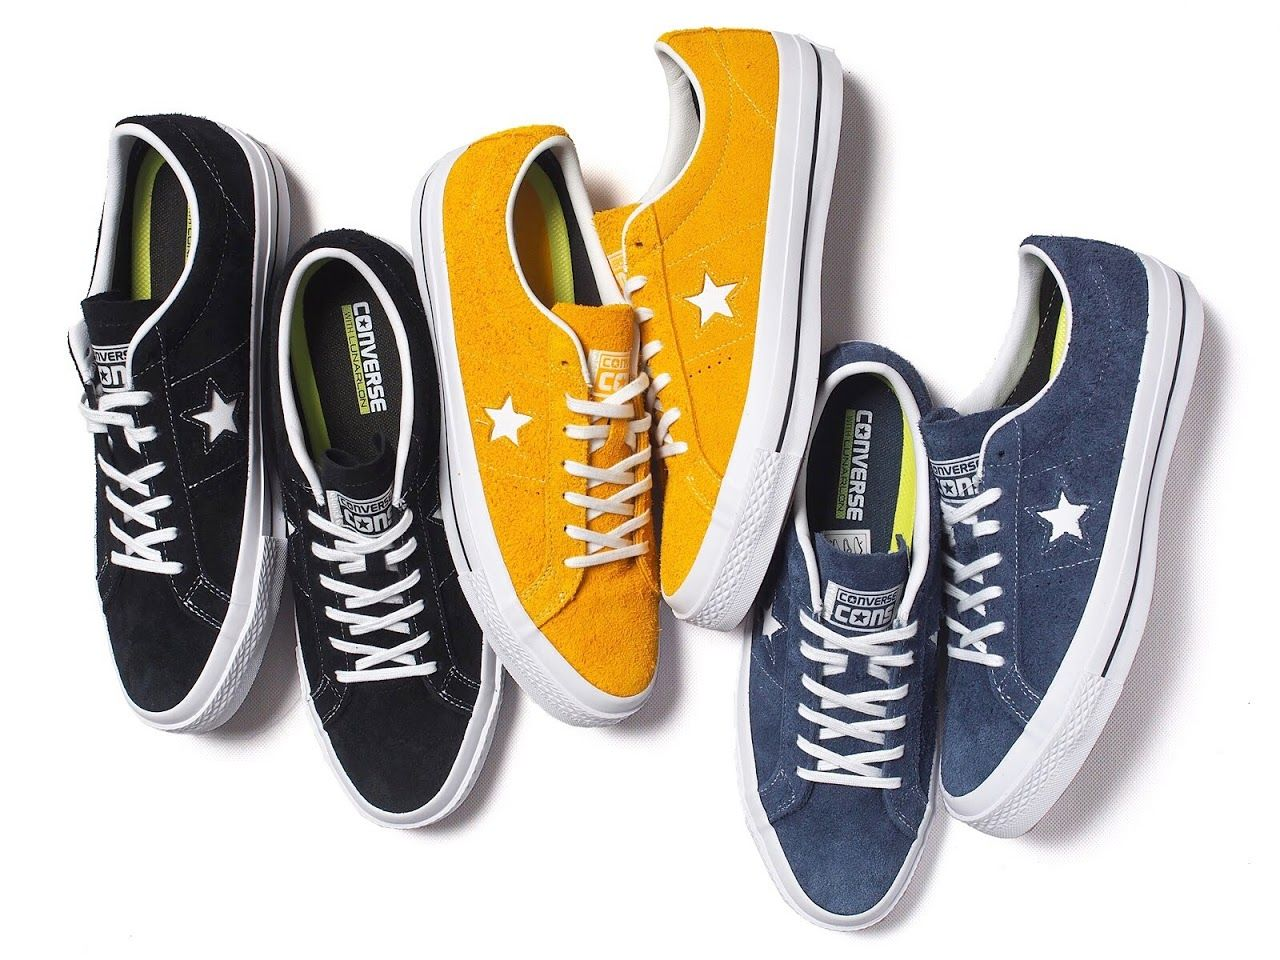 41096b66b08 Converse   Cons One Star Pro OX